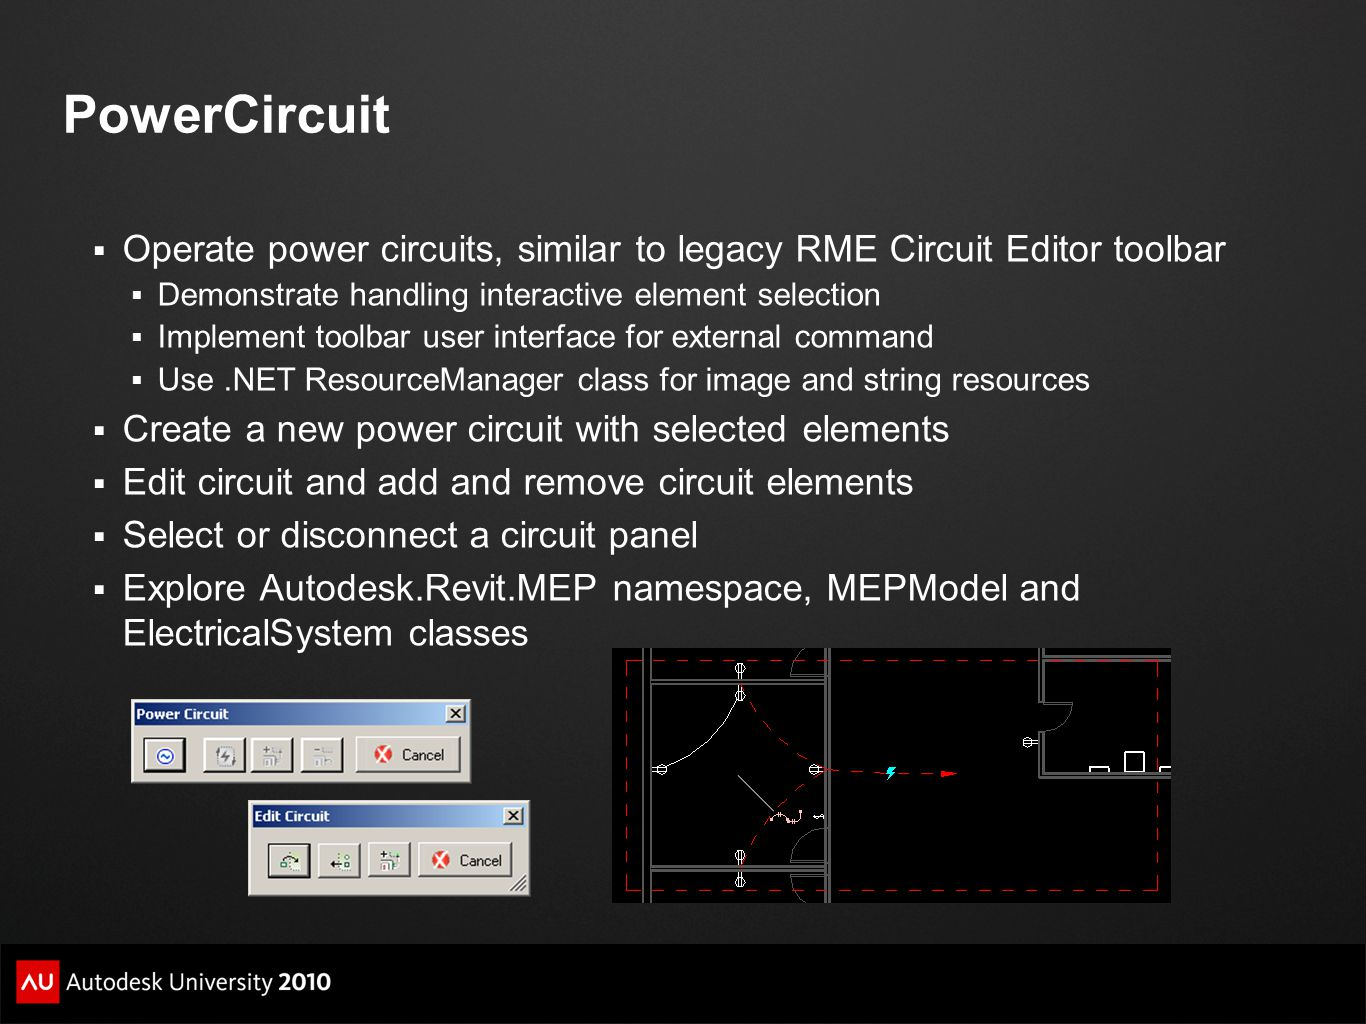 PowerCircuit Operate power circuits, similar to legacy RME Circuit Editor toolbar. Demonstrate handling interactive element selection.